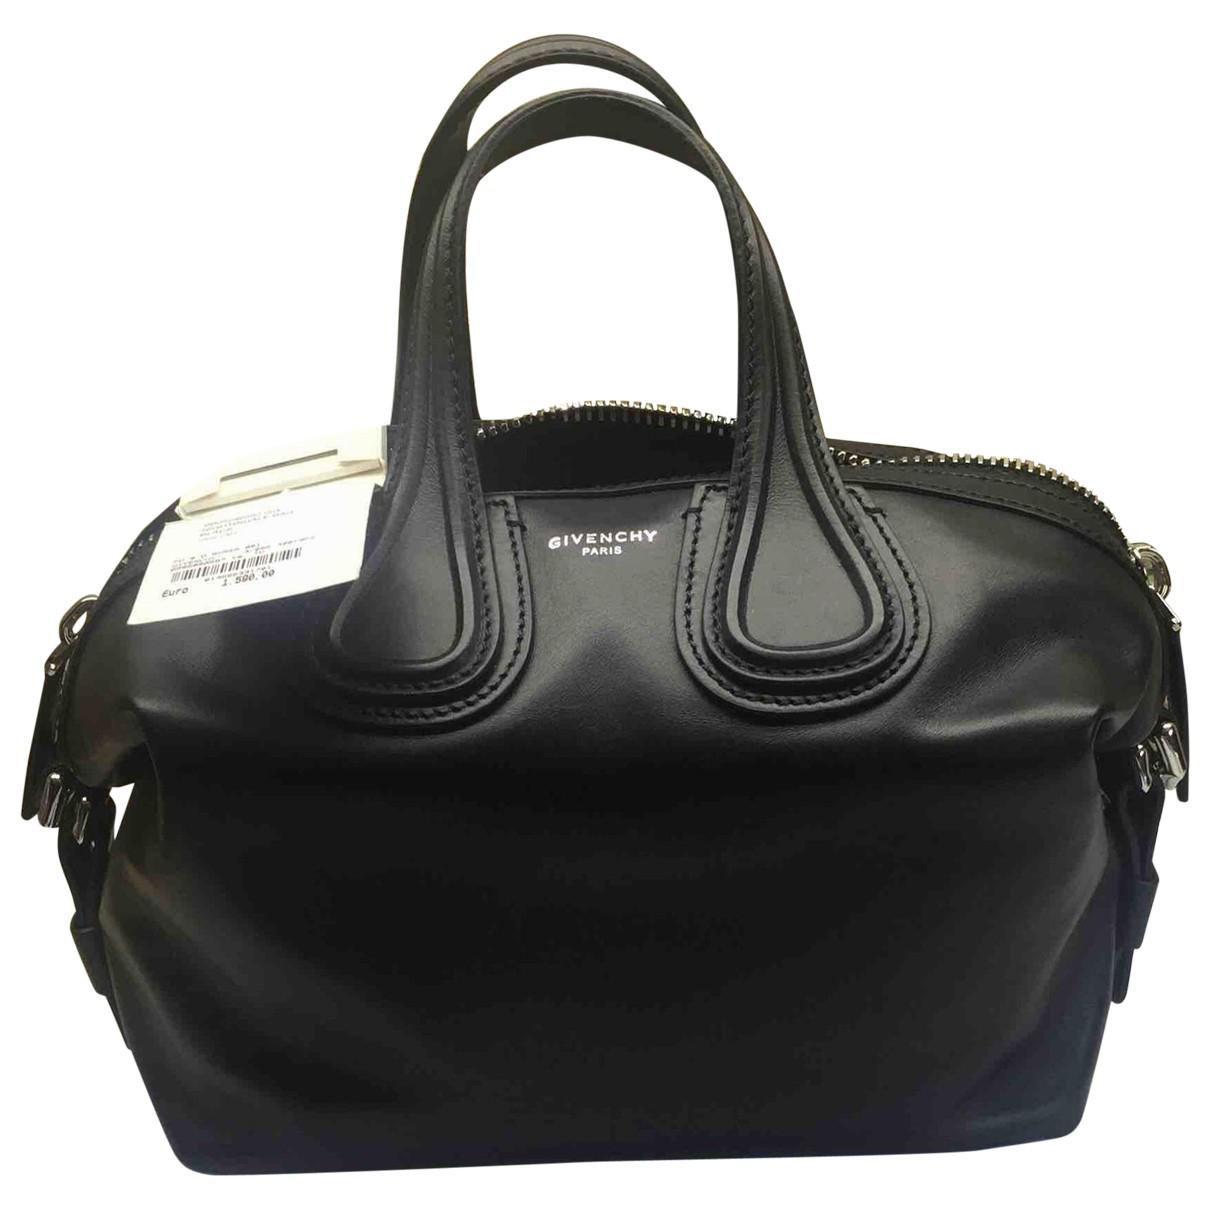 Givenchy Pre-owned - Nightingale patent leather handbag hZFSU